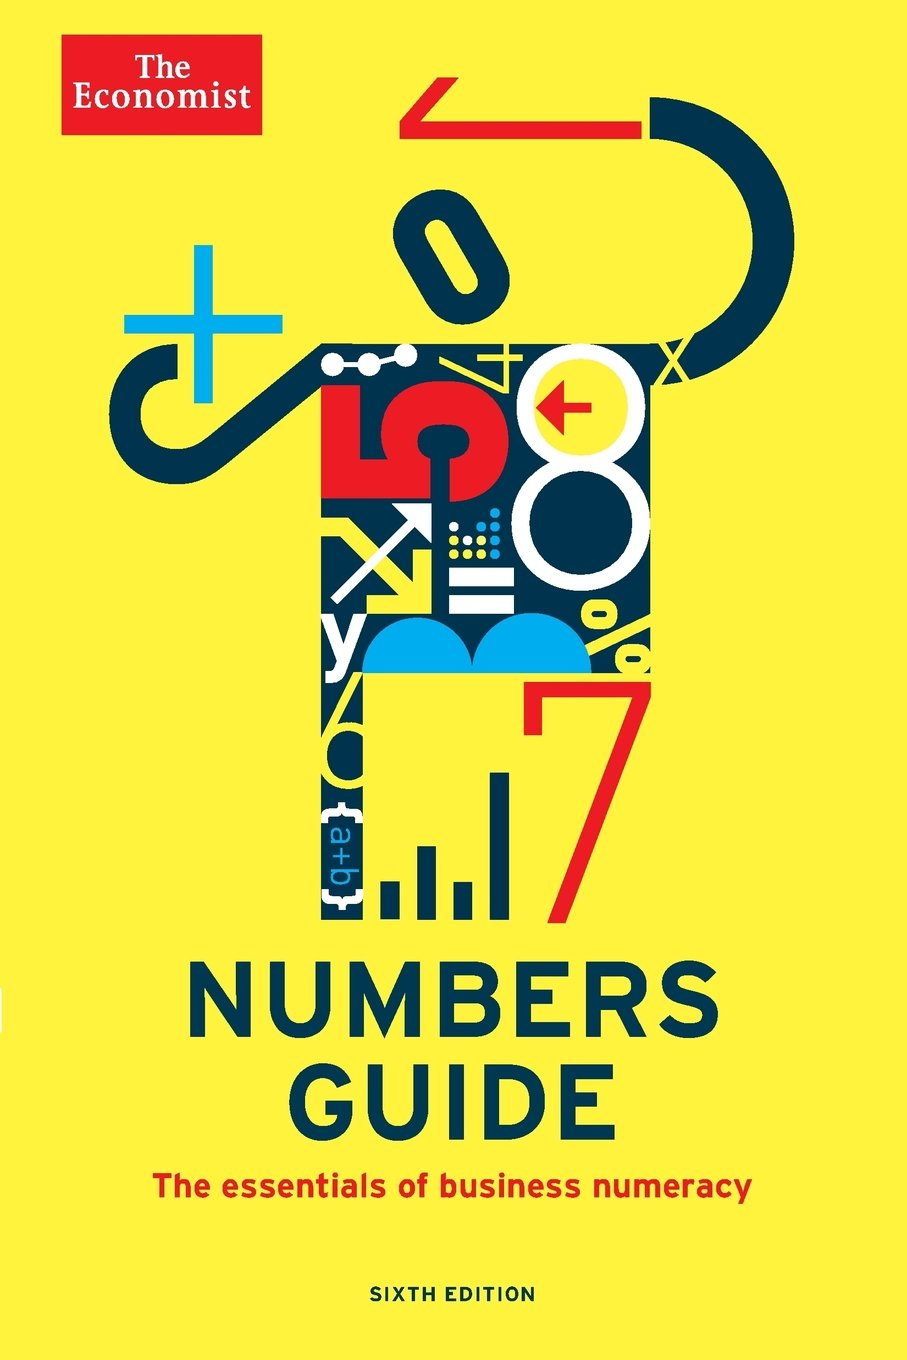 The Economist Numbers Guide  6th Ed   The Essentials Of Business Numeracy  Economist Books